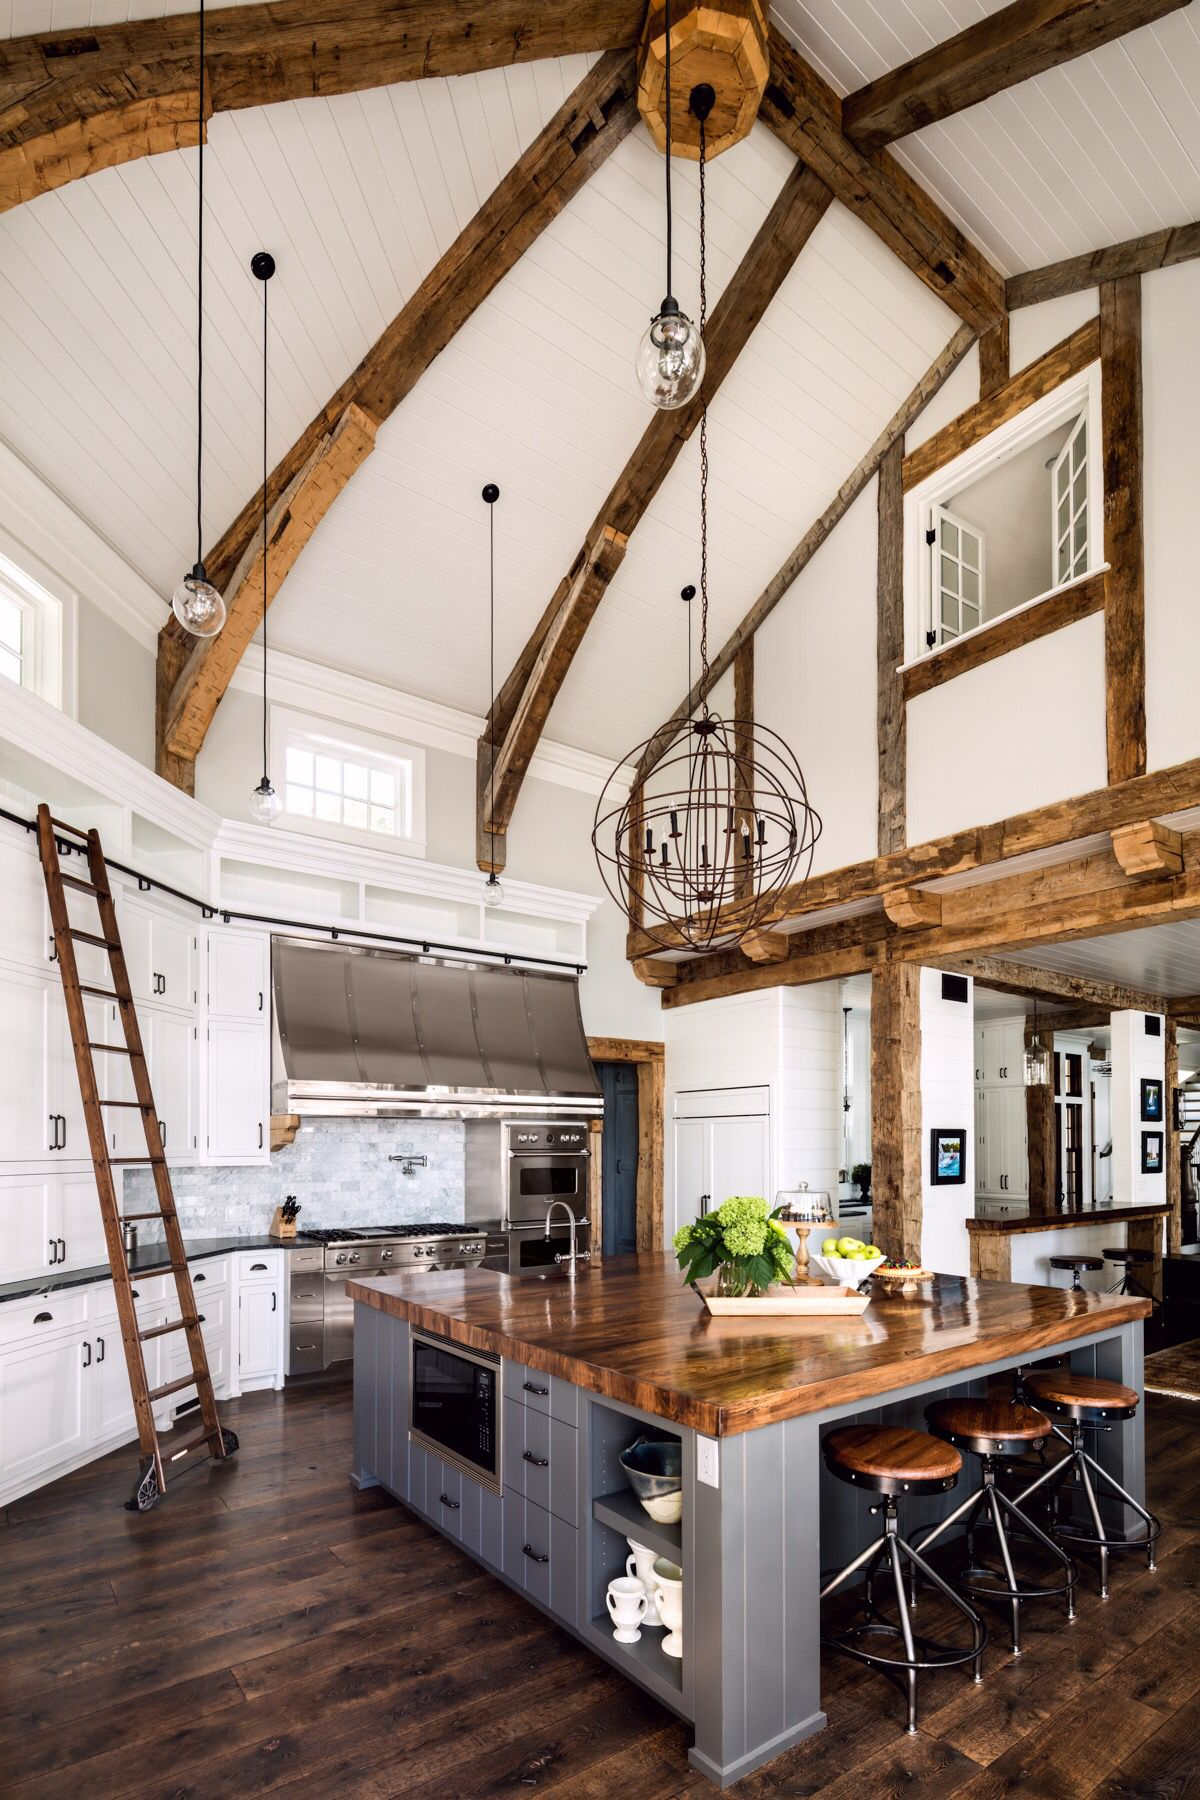 Marvelous Stunning Country Kitchen Features A Double Height Vaulted Ceiling With  Exposed Joists And A Loft Window Overlooking The Space In This Home  Designed By Wade ...